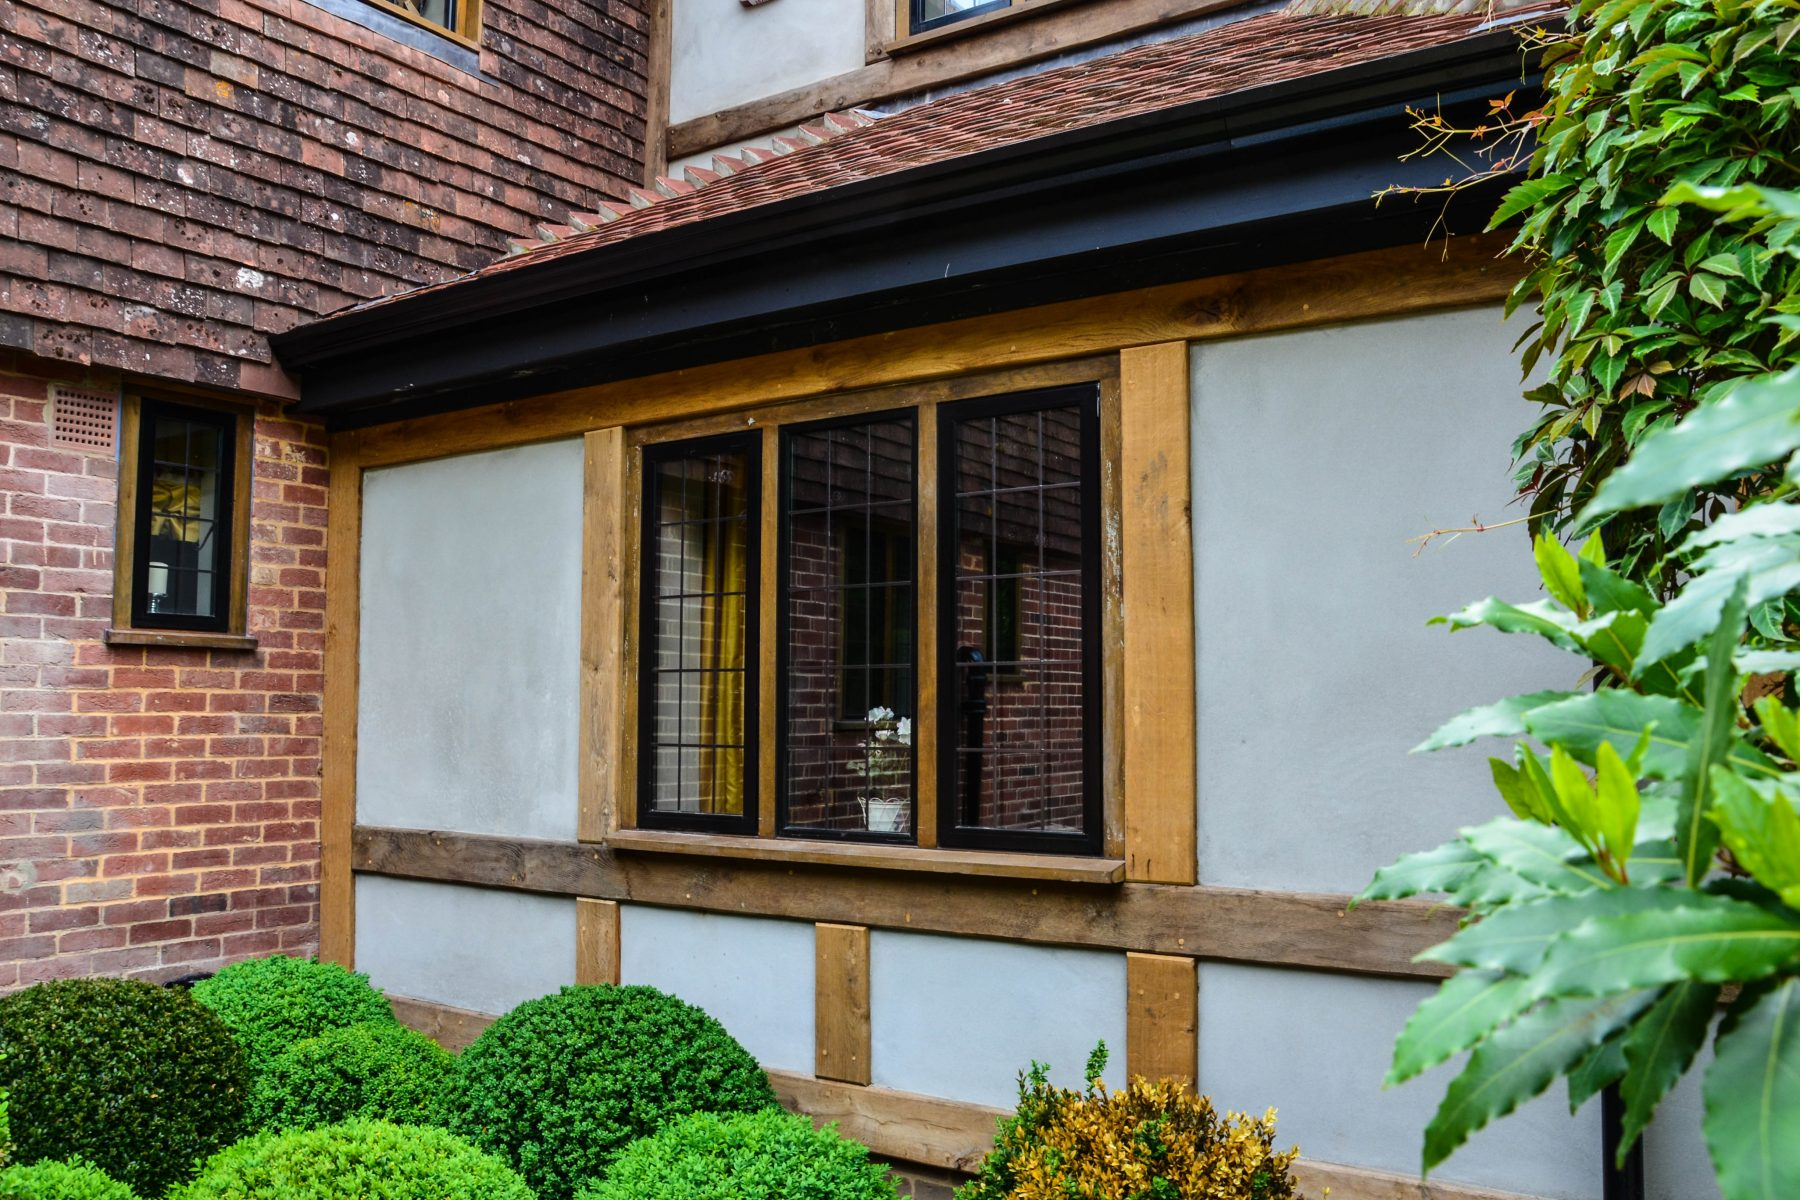 Wooden casement windows in heritage home